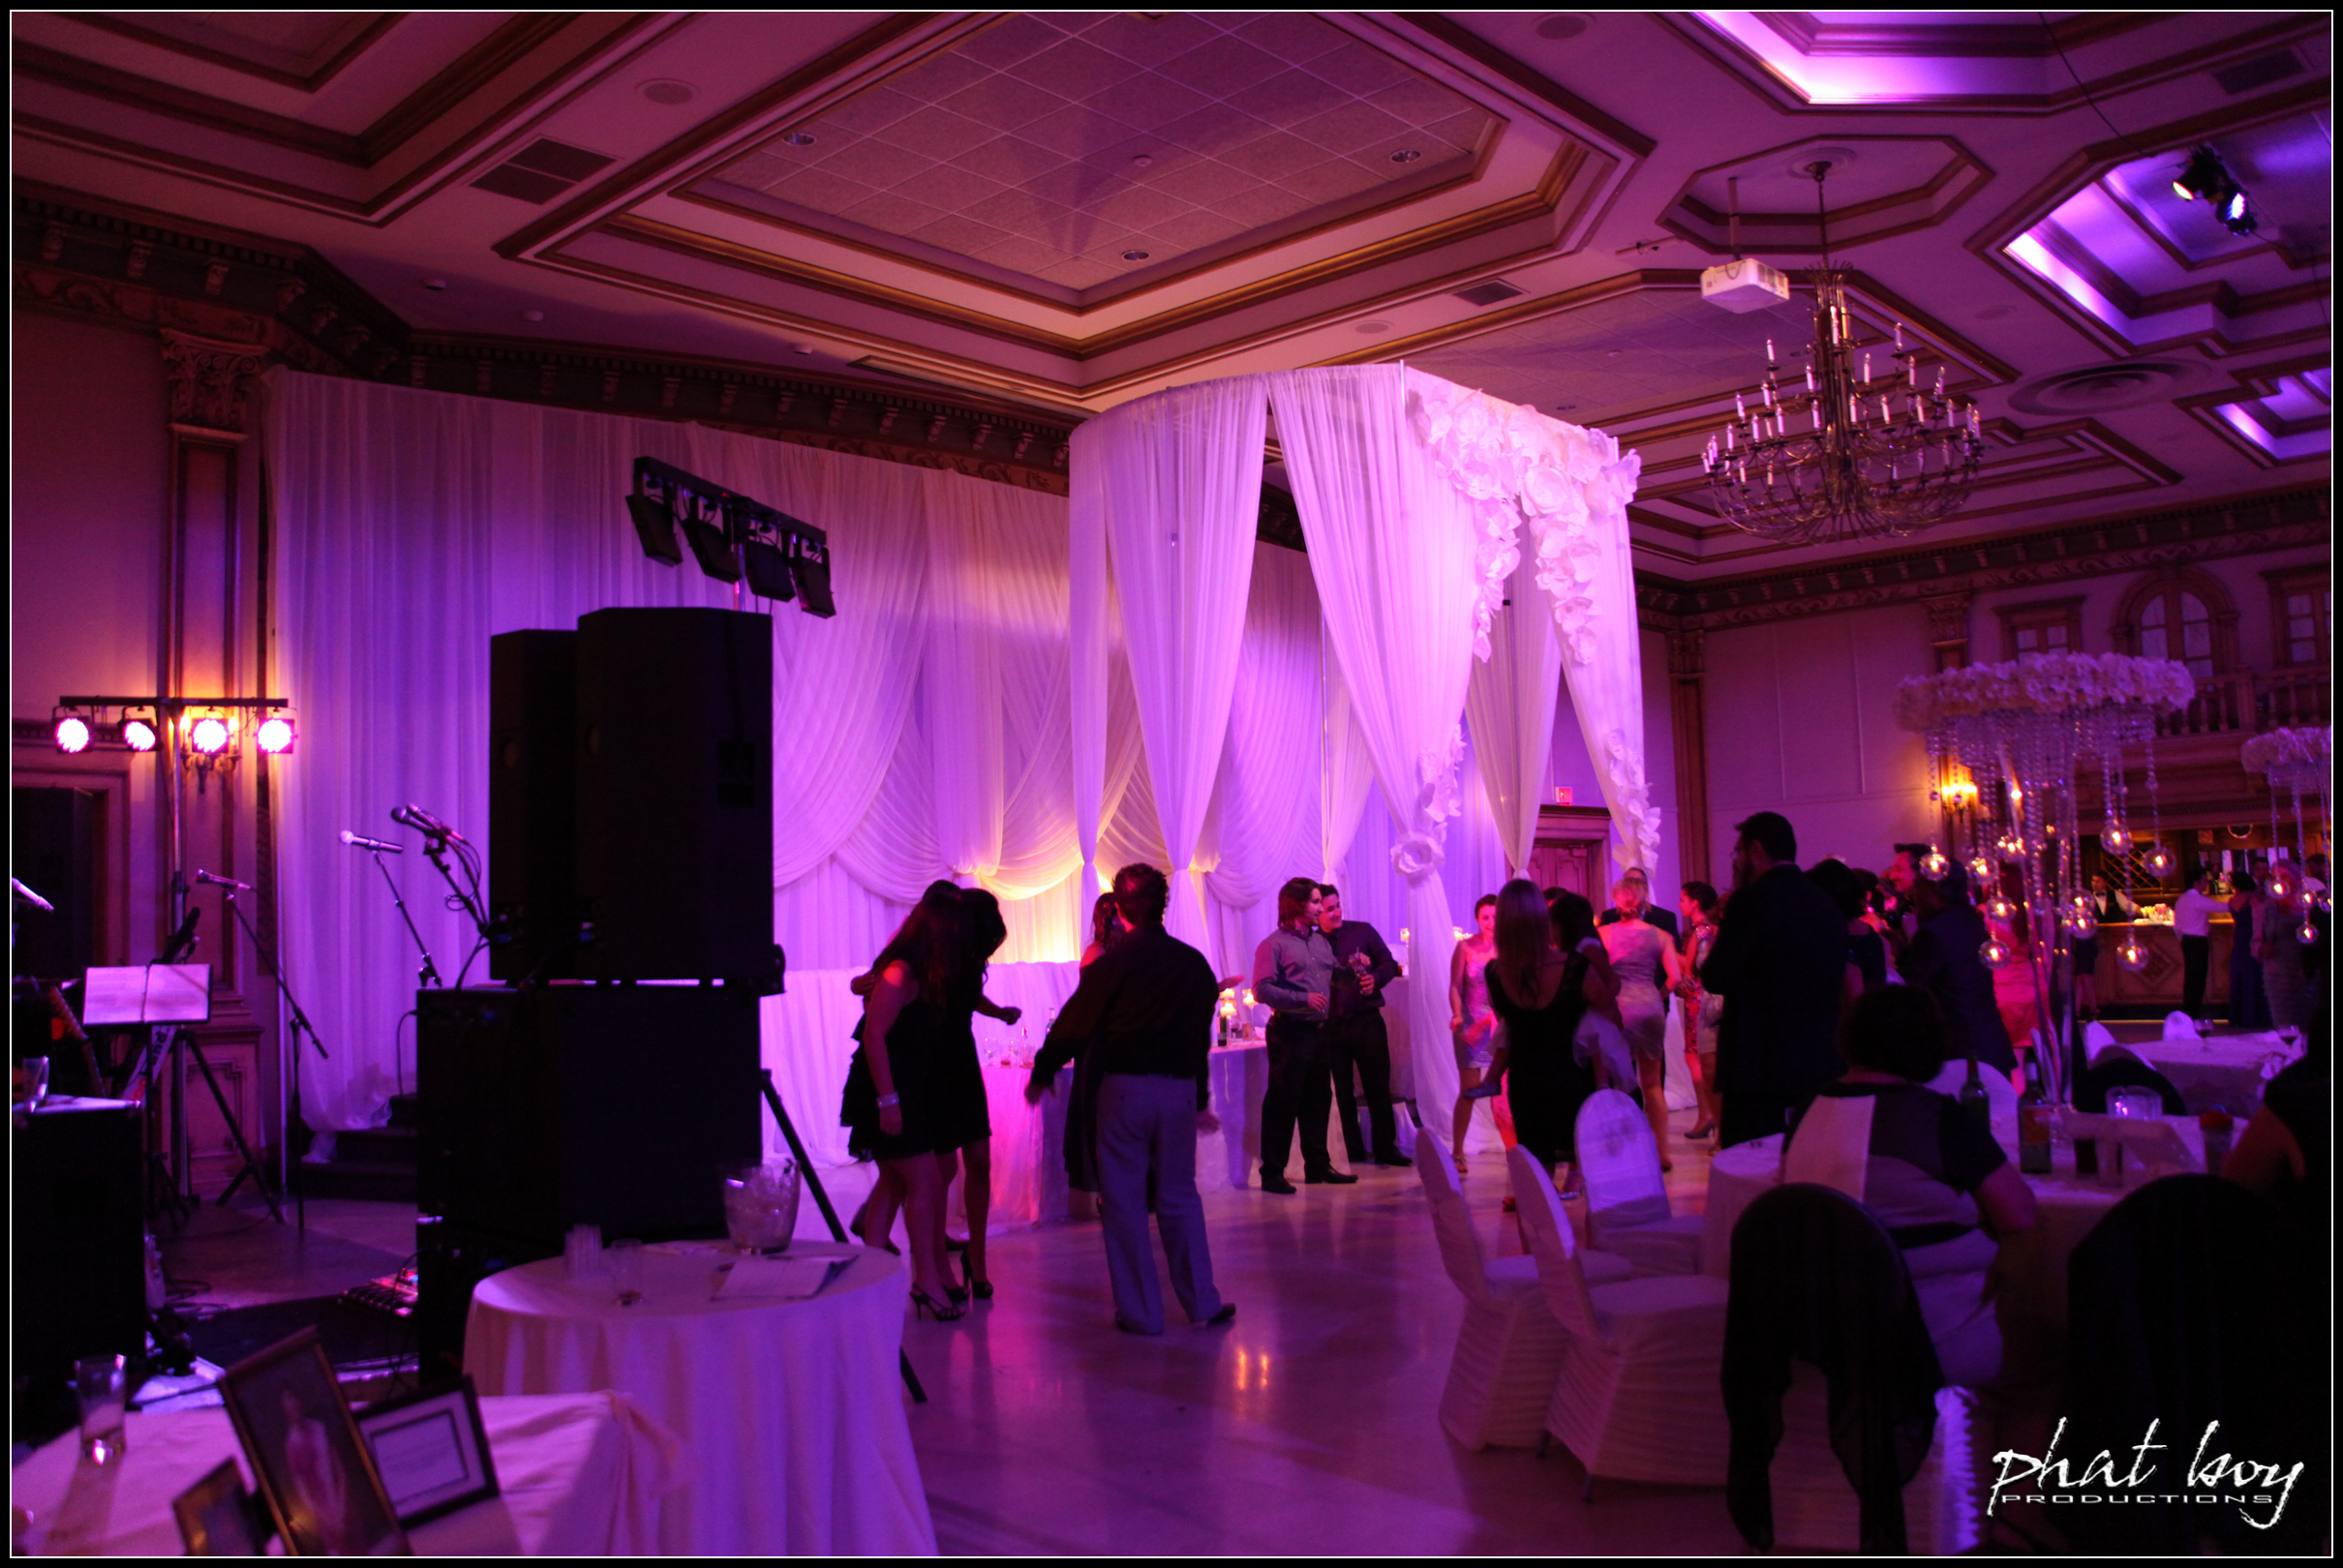 Ted & Mecy - Specialty Lighting - WEB EDITS-1.jpg